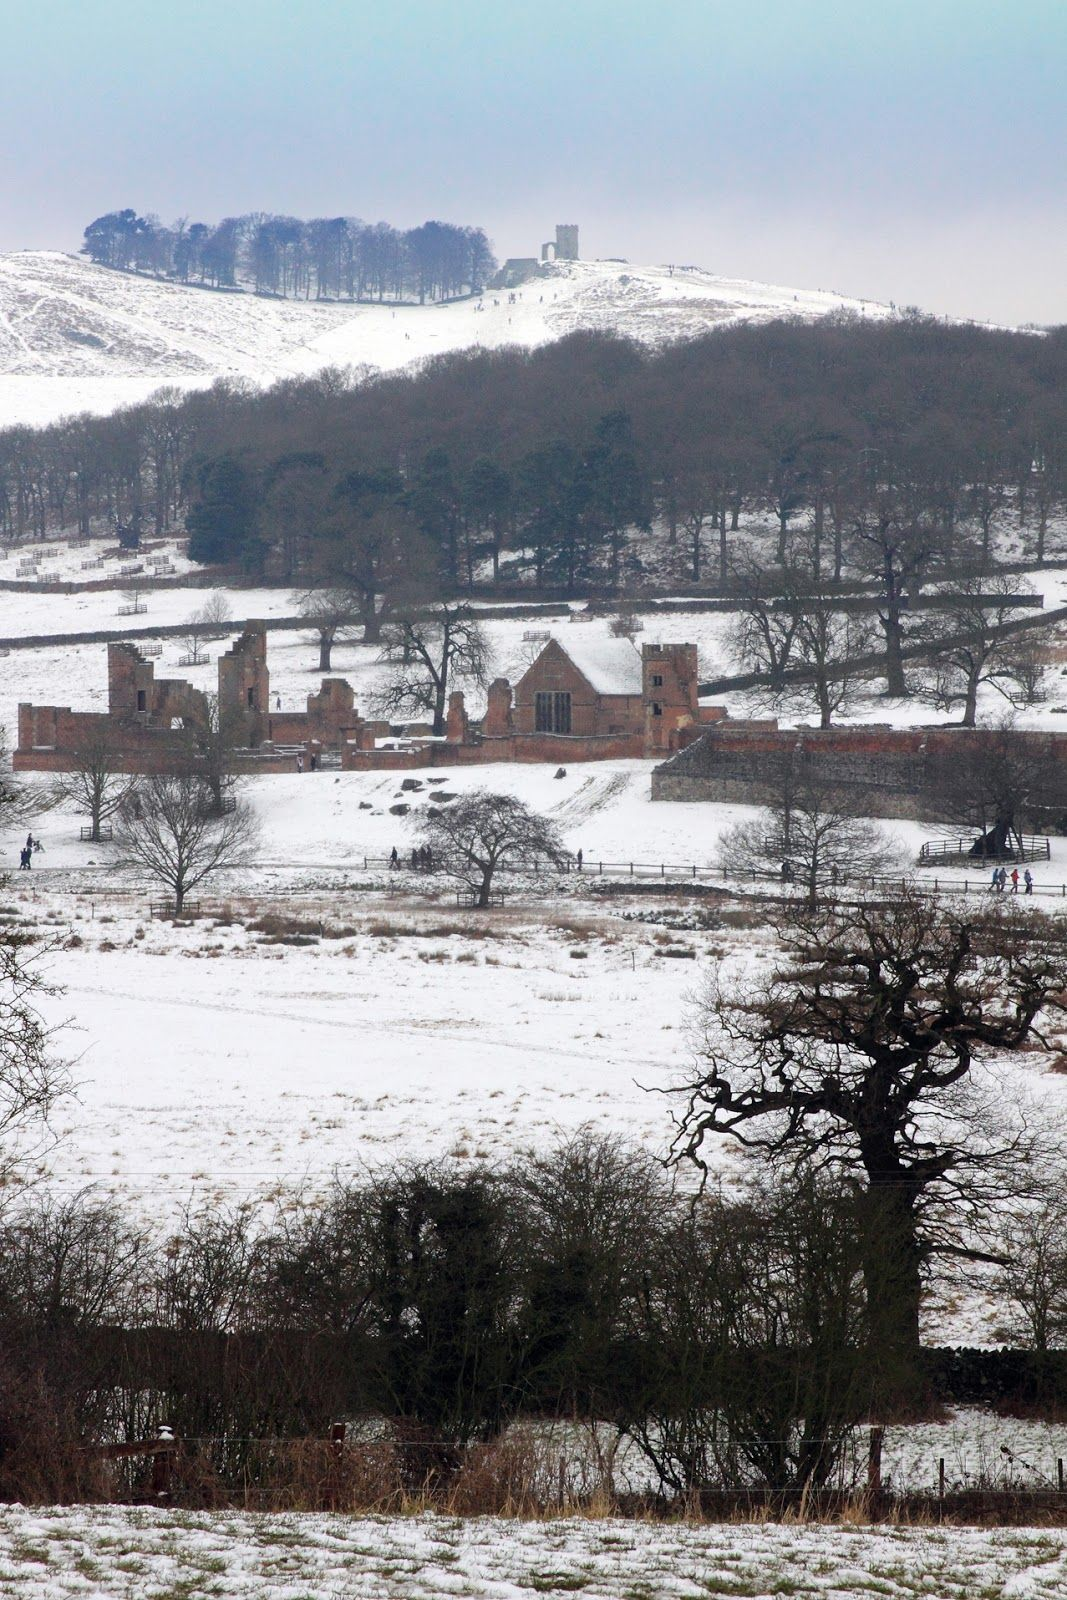 Bradgate House, Leicestershire, the birthplace and ancestral home of Lady Jane Grey